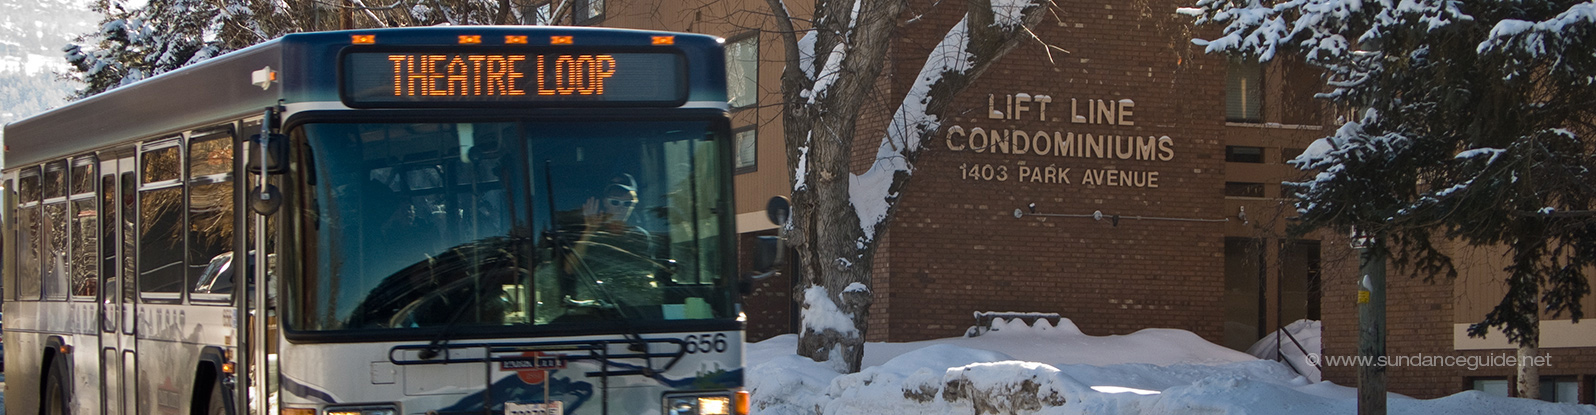 A picture of the Theatre Loop free shuttle bus for the Sundance Film Festival